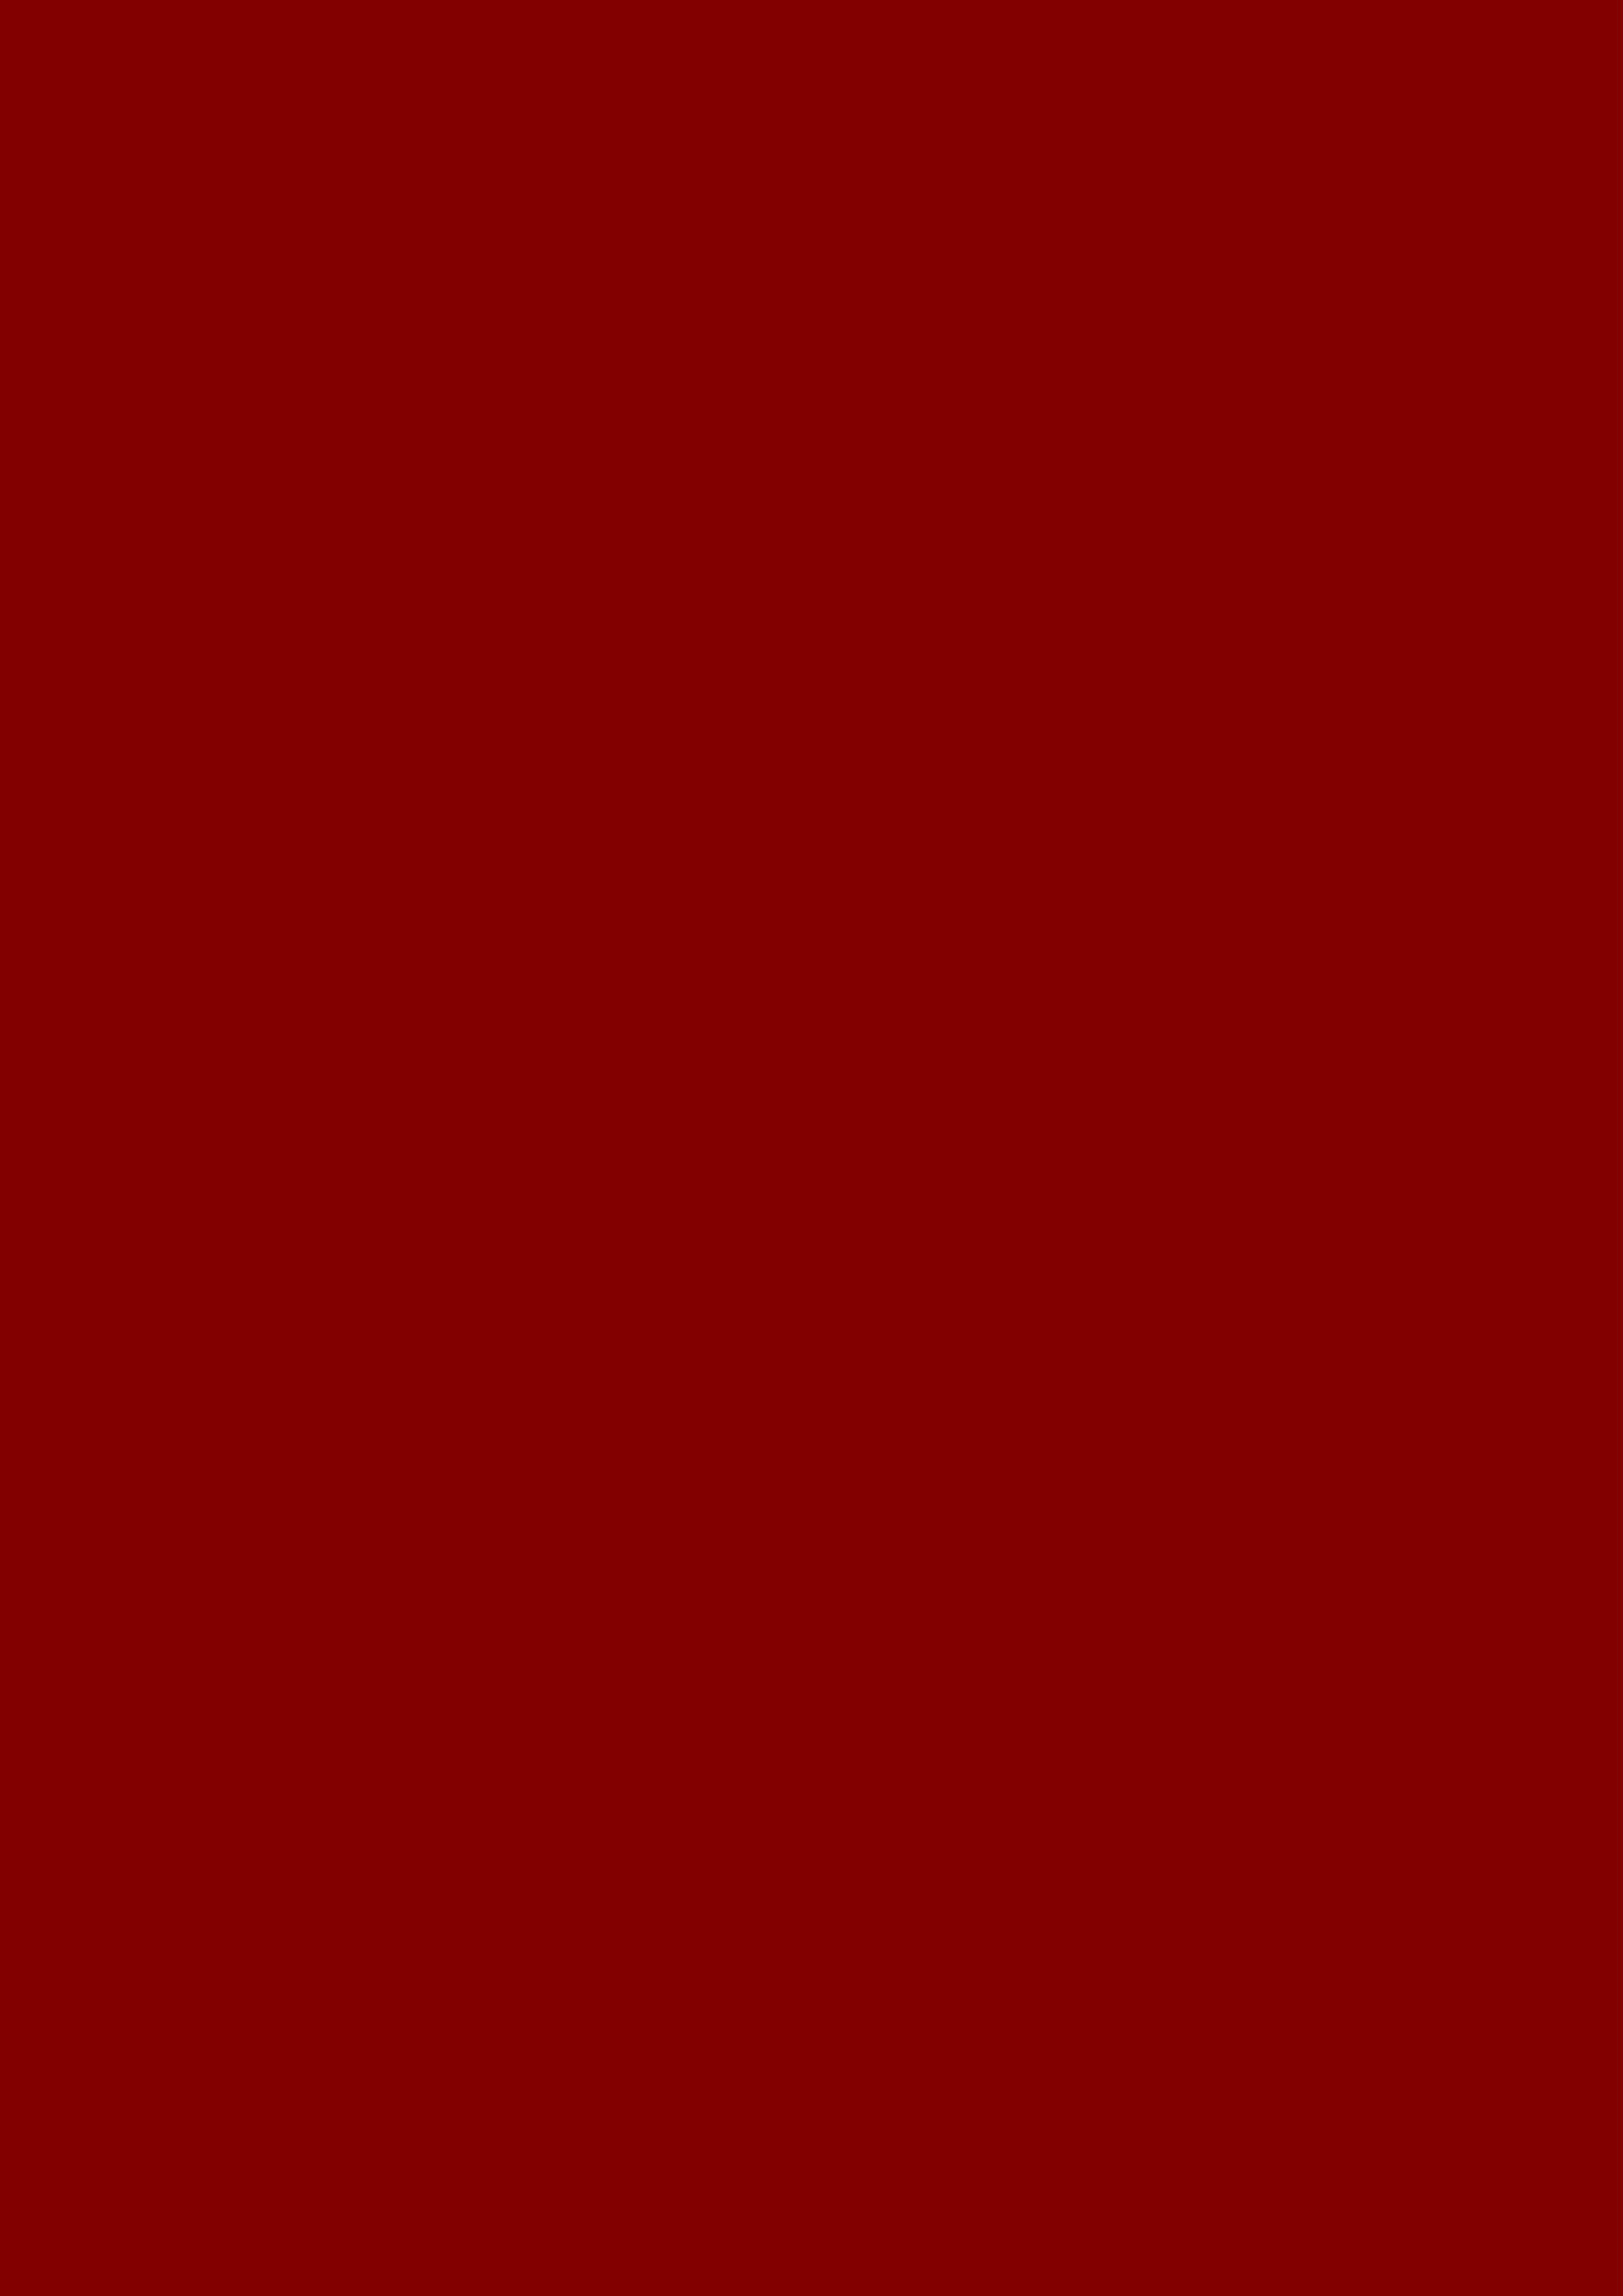 2480x3508 Maroon Web Solid Color Background